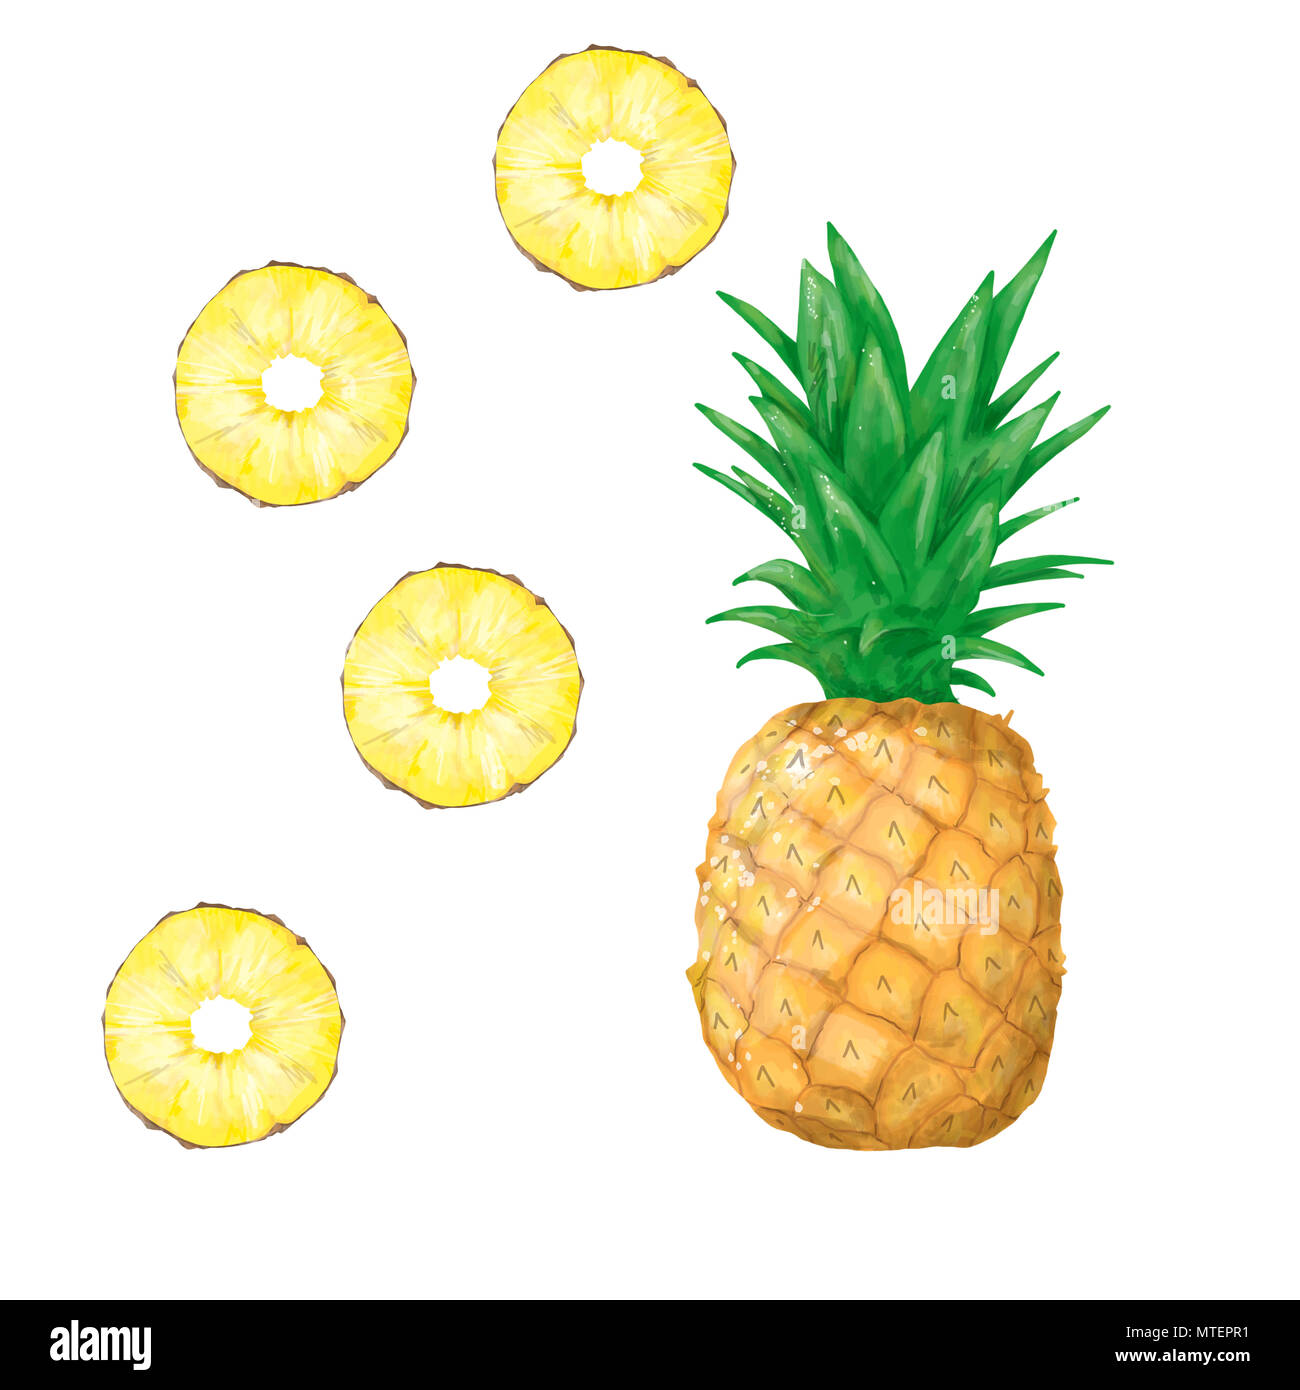 pineapple clip art whole fruit summer digital fresh tropical yellow fruit on white background - Stock Image